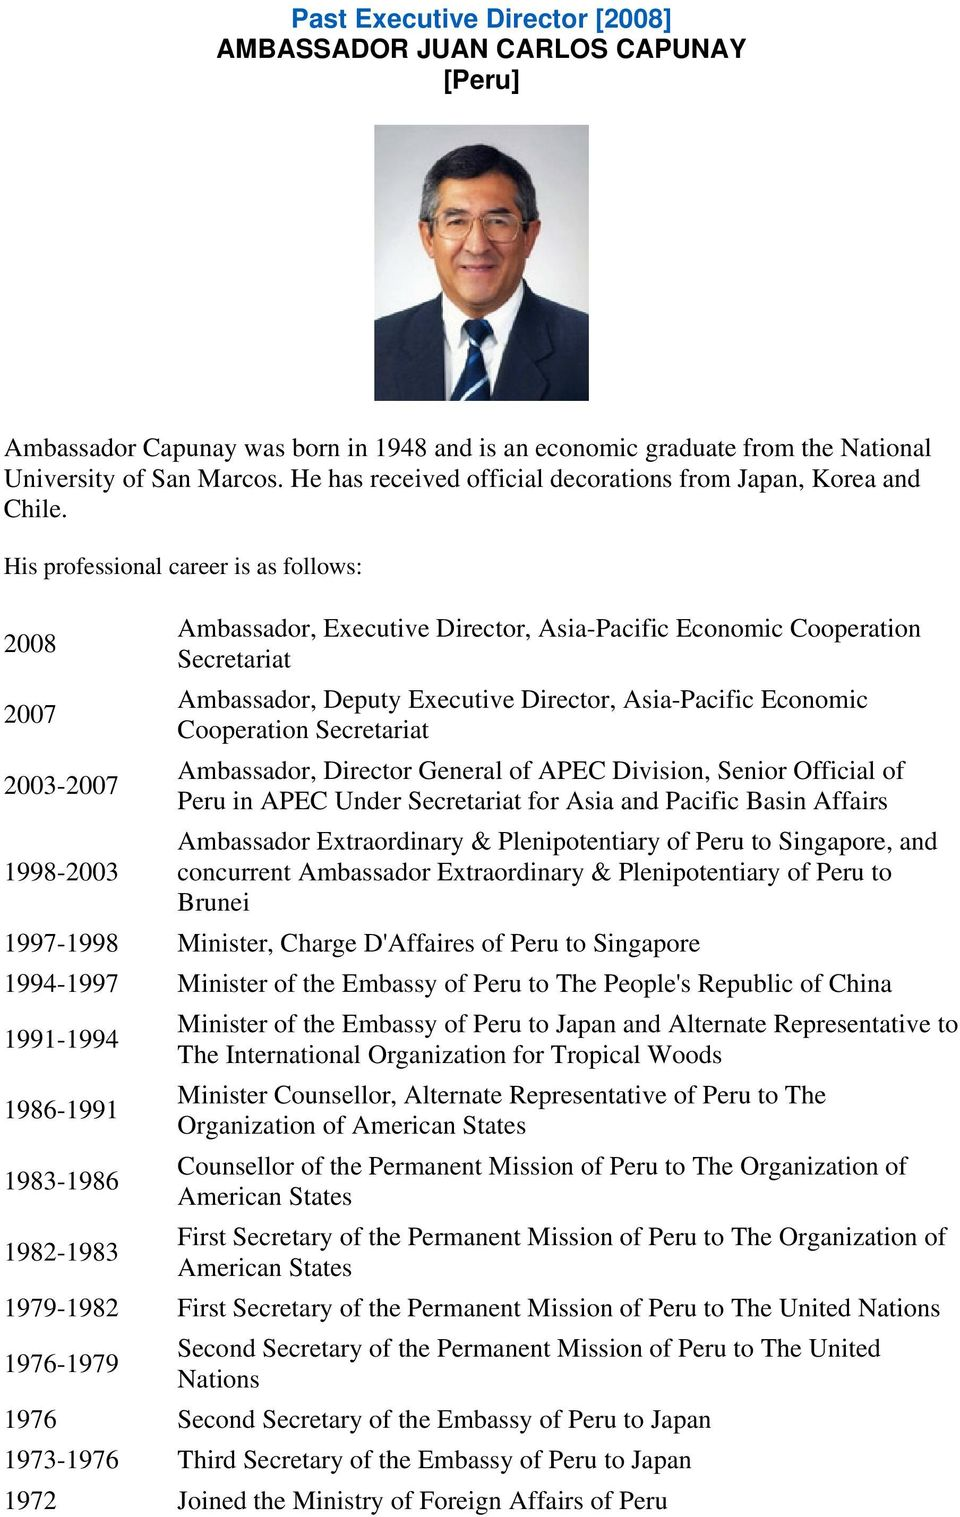 His professional career is as follows: 2008 2007 2003-2007 Ambassador, Executive Director, Asia-Pacific Economic Cooperation Secretariat Ambassador, Deputy Executive Director, Asia-Pacific Economic